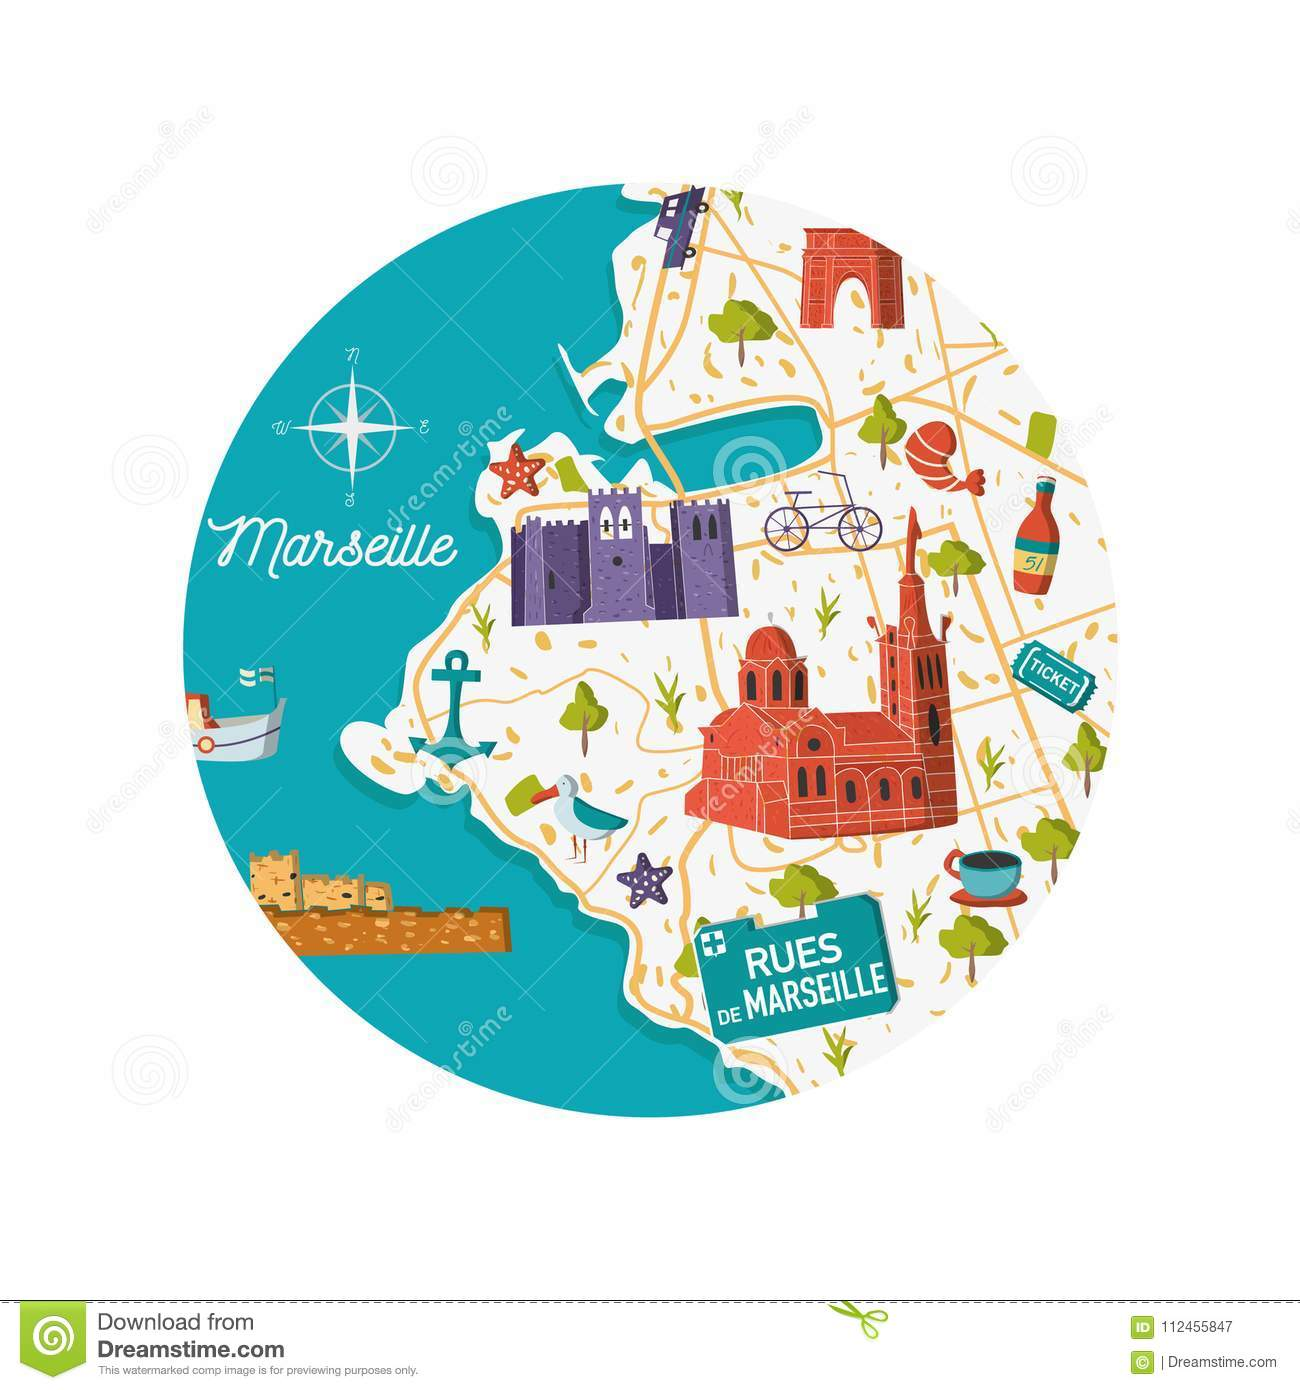 Marseille Map Of France.France Marseille City Map Illustration Stock Vector Illustration